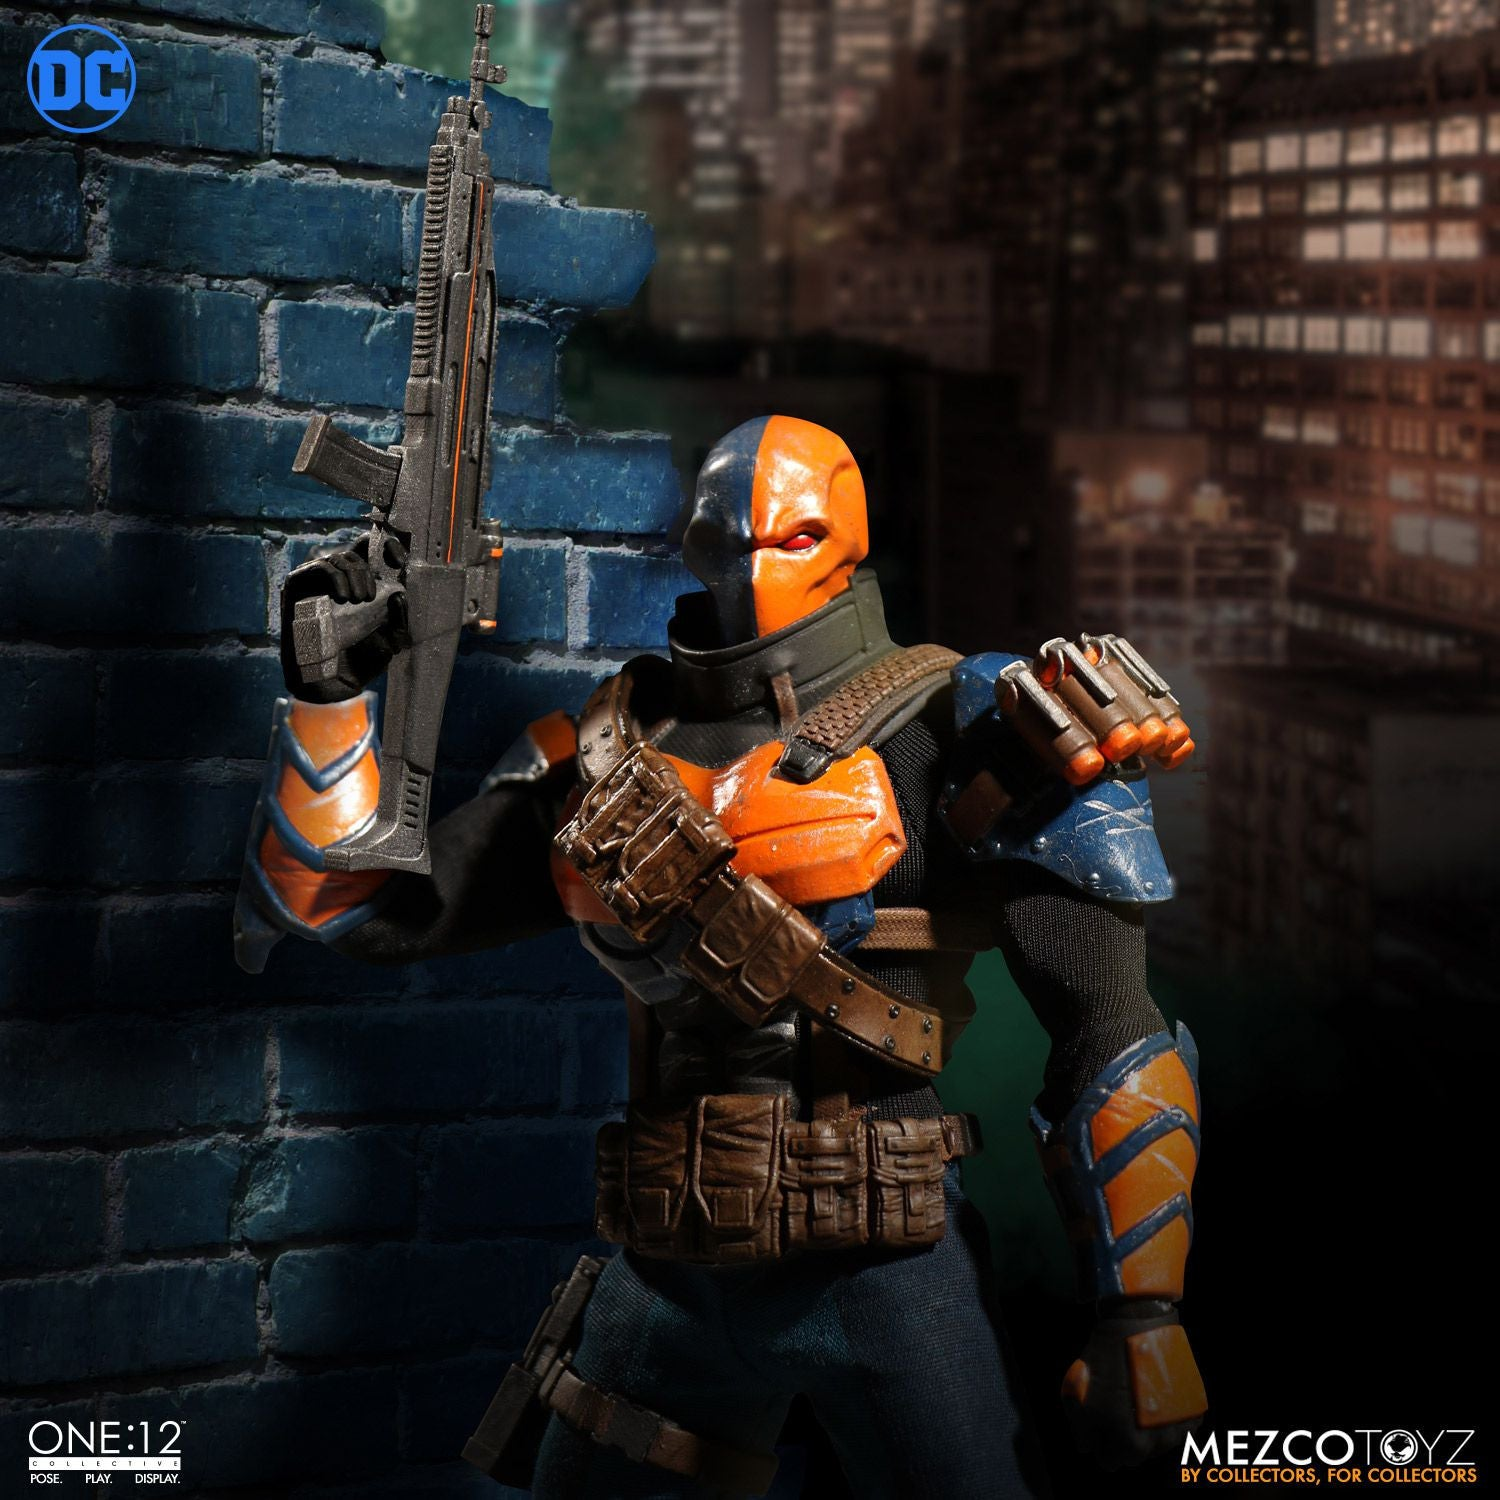 Mezco - One:12 Collective - Deathstroke - Marvelous Toys - 7